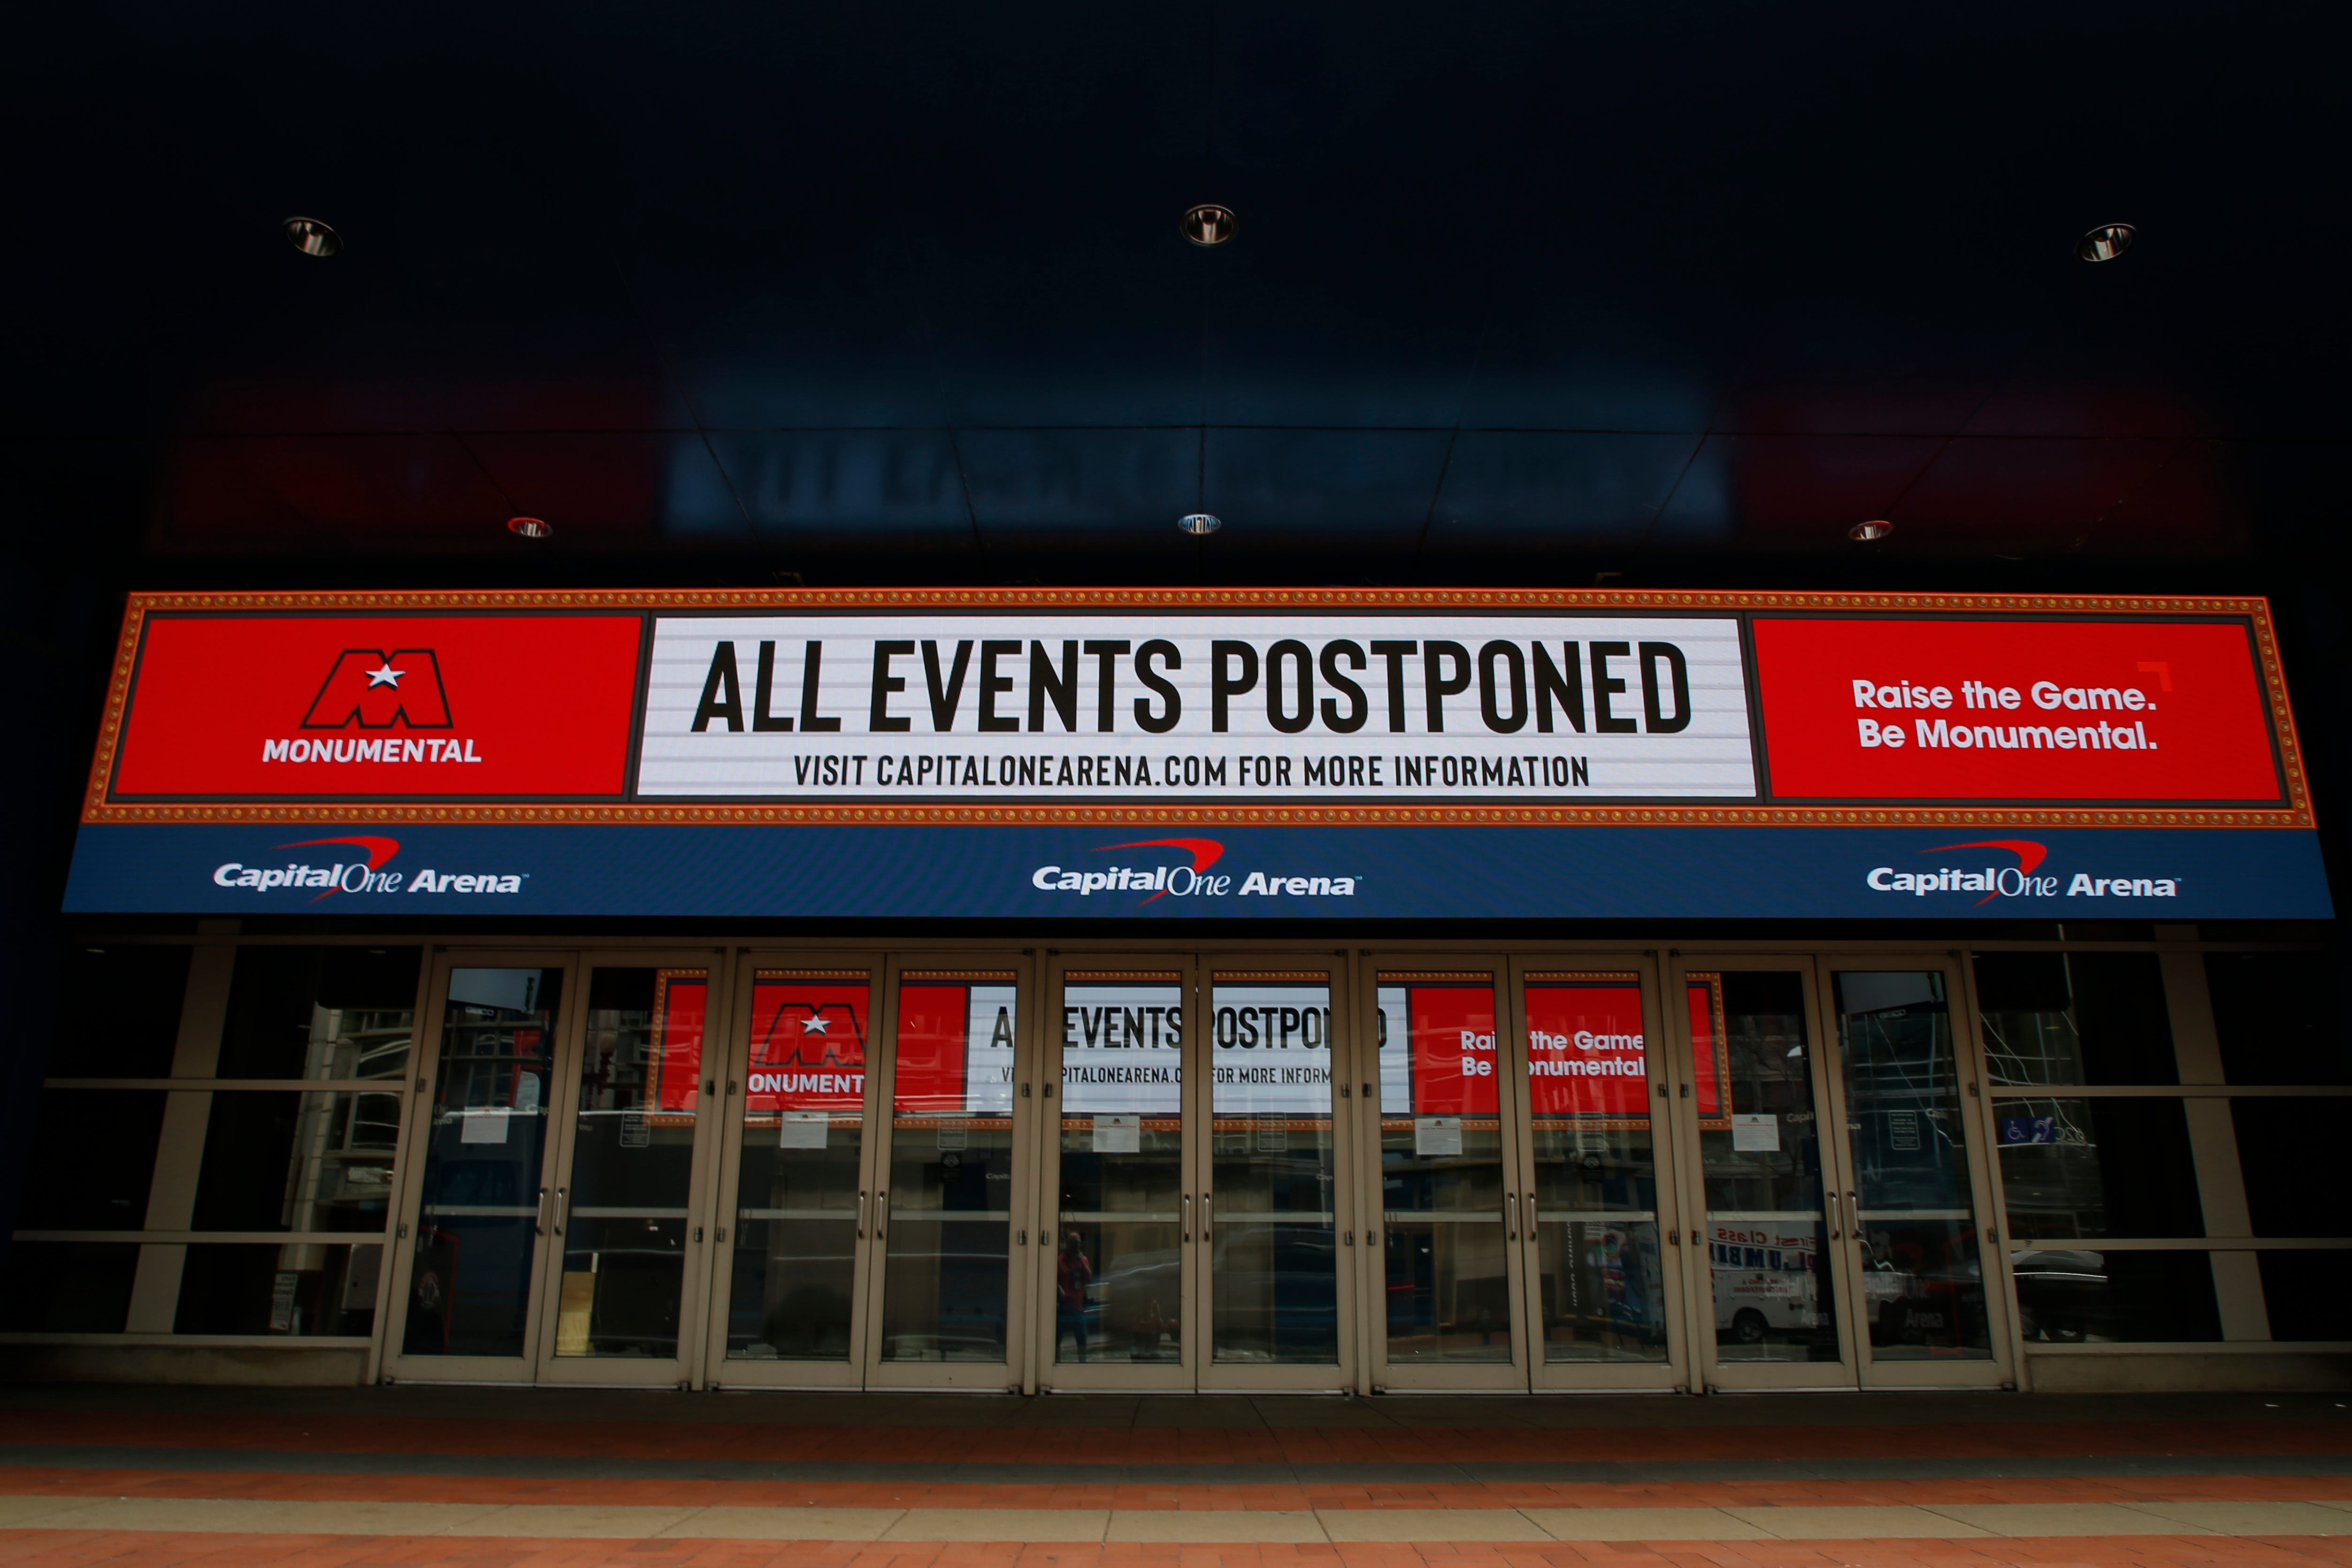 The marquee outside the Capital One Arena, home of the NBA's Washington Wizards and NHL's Washington Capitals, announces the suspension of their 2020 seasons during the coronavirus pandemic.